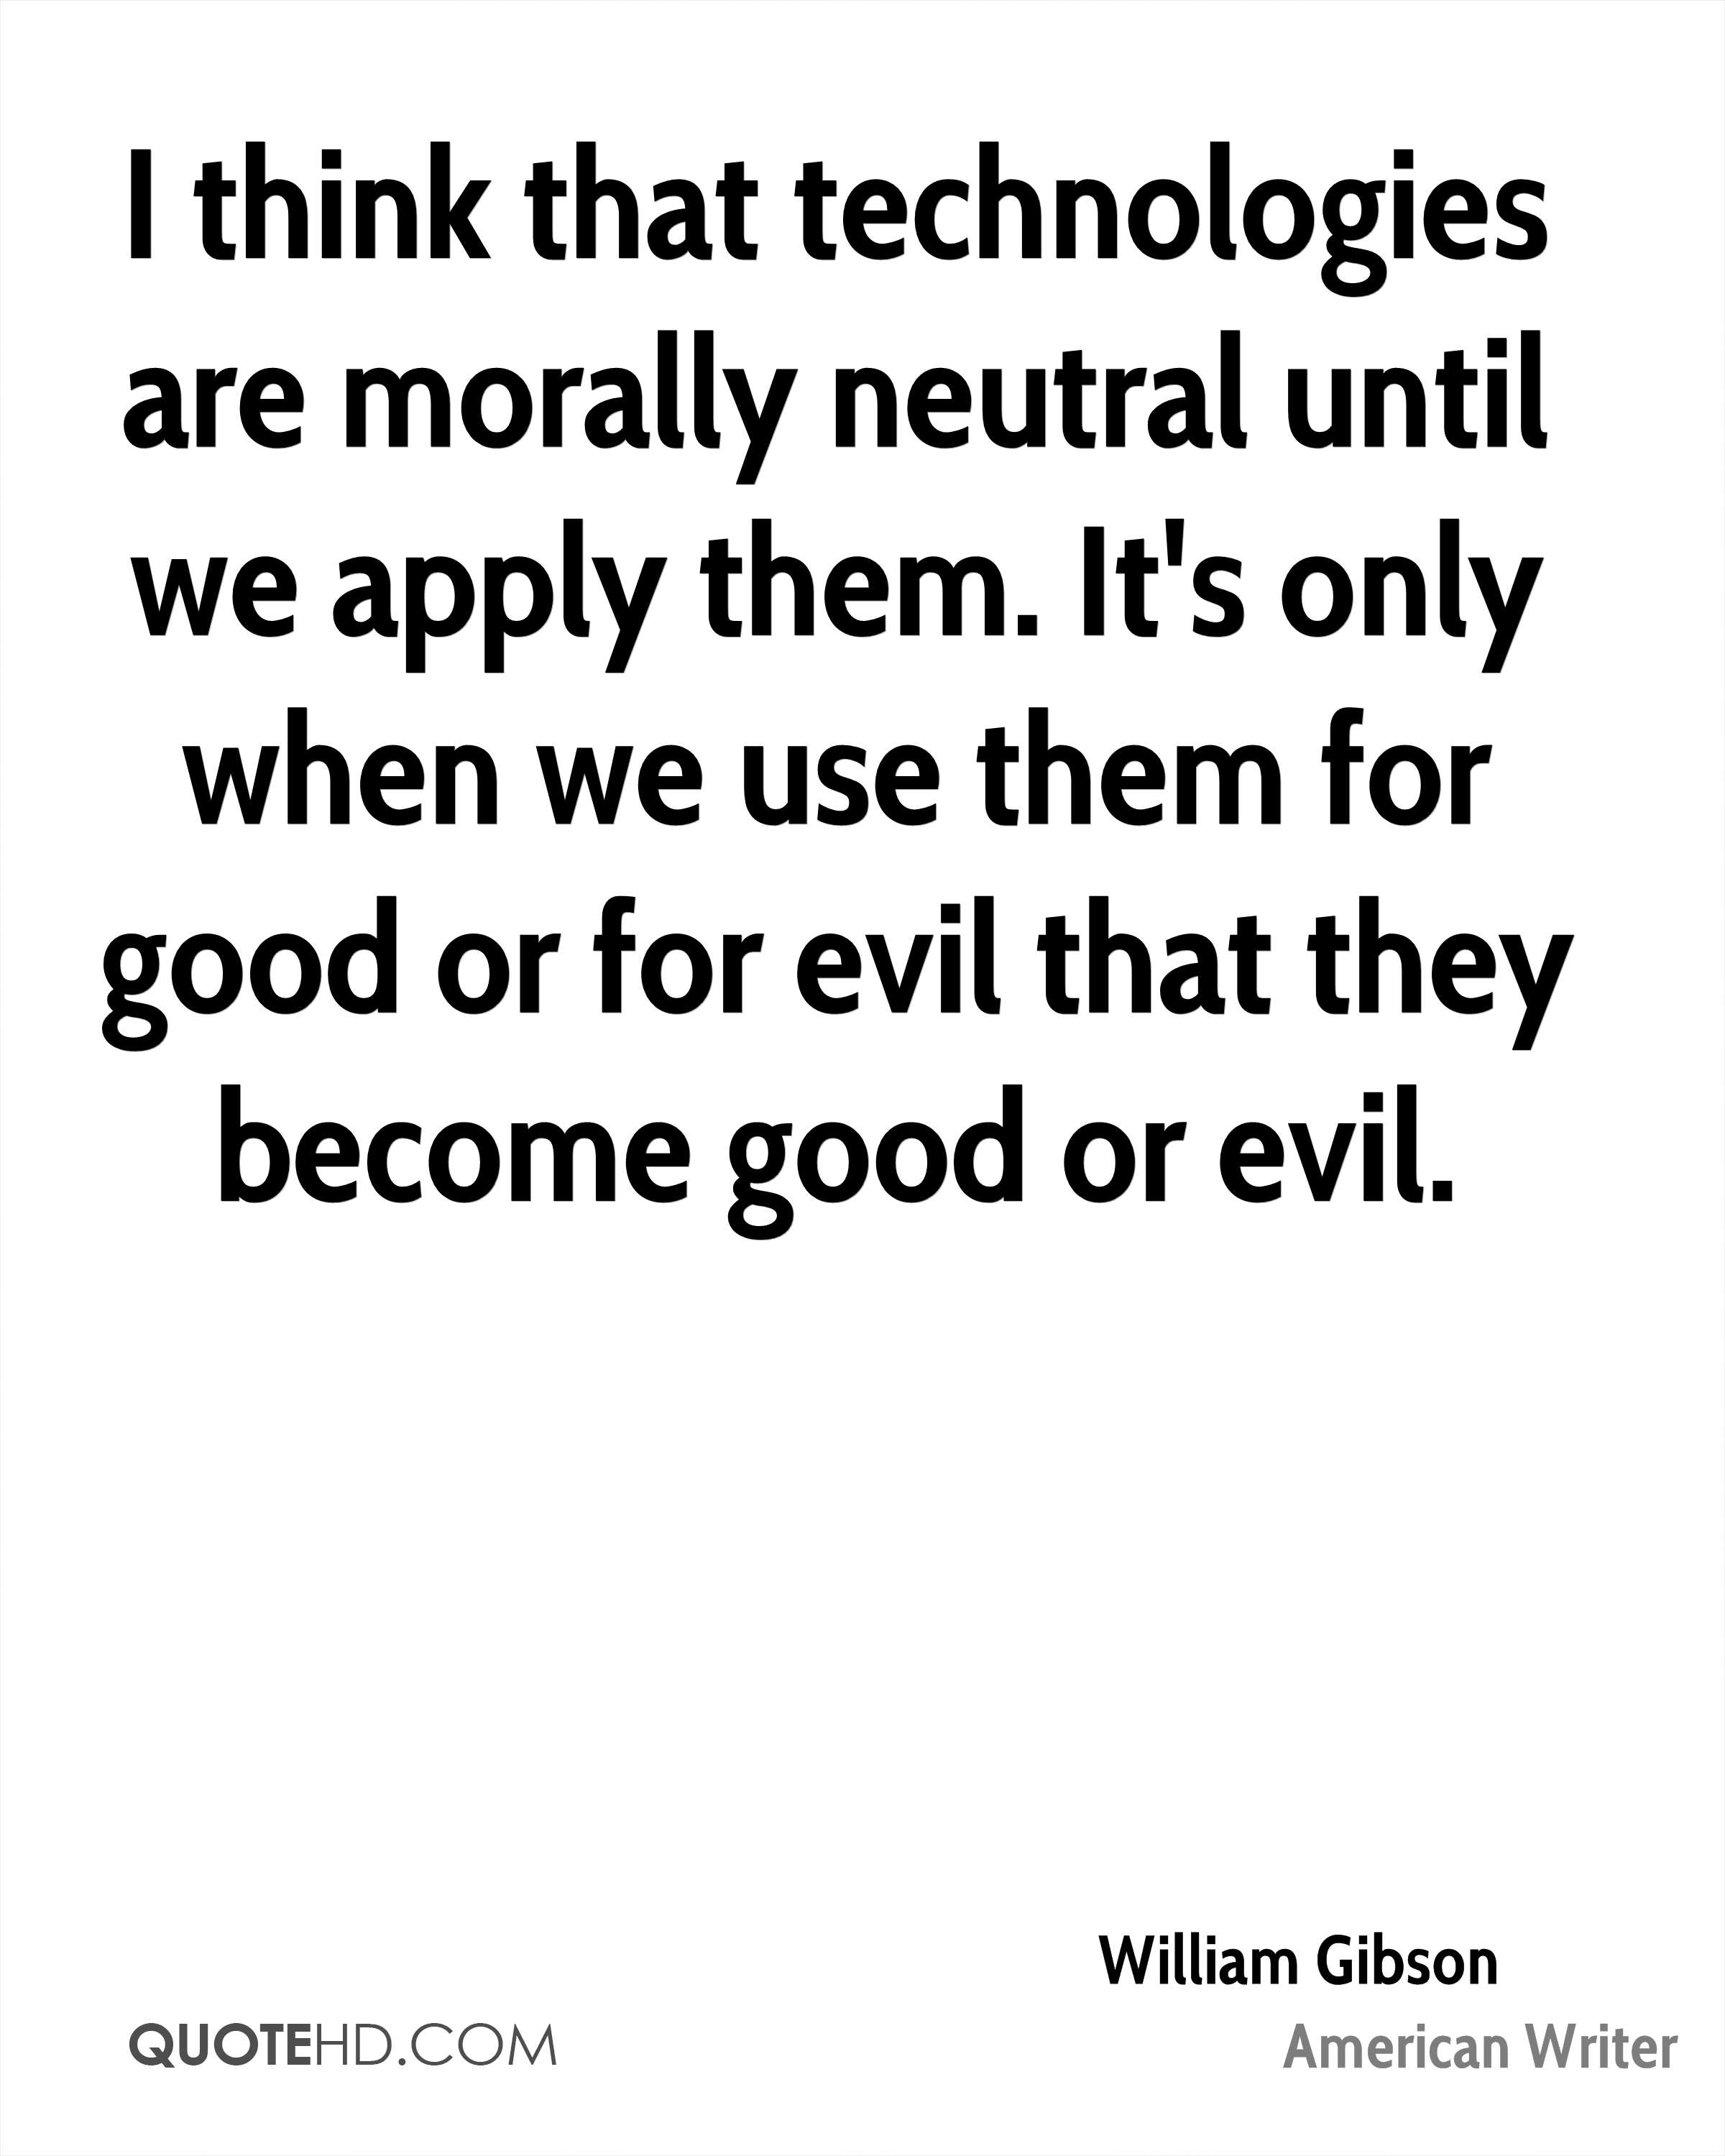 I think that technologies are morally neutral until we apply them. It's only when we use them for good or for evil that they become good or evil.